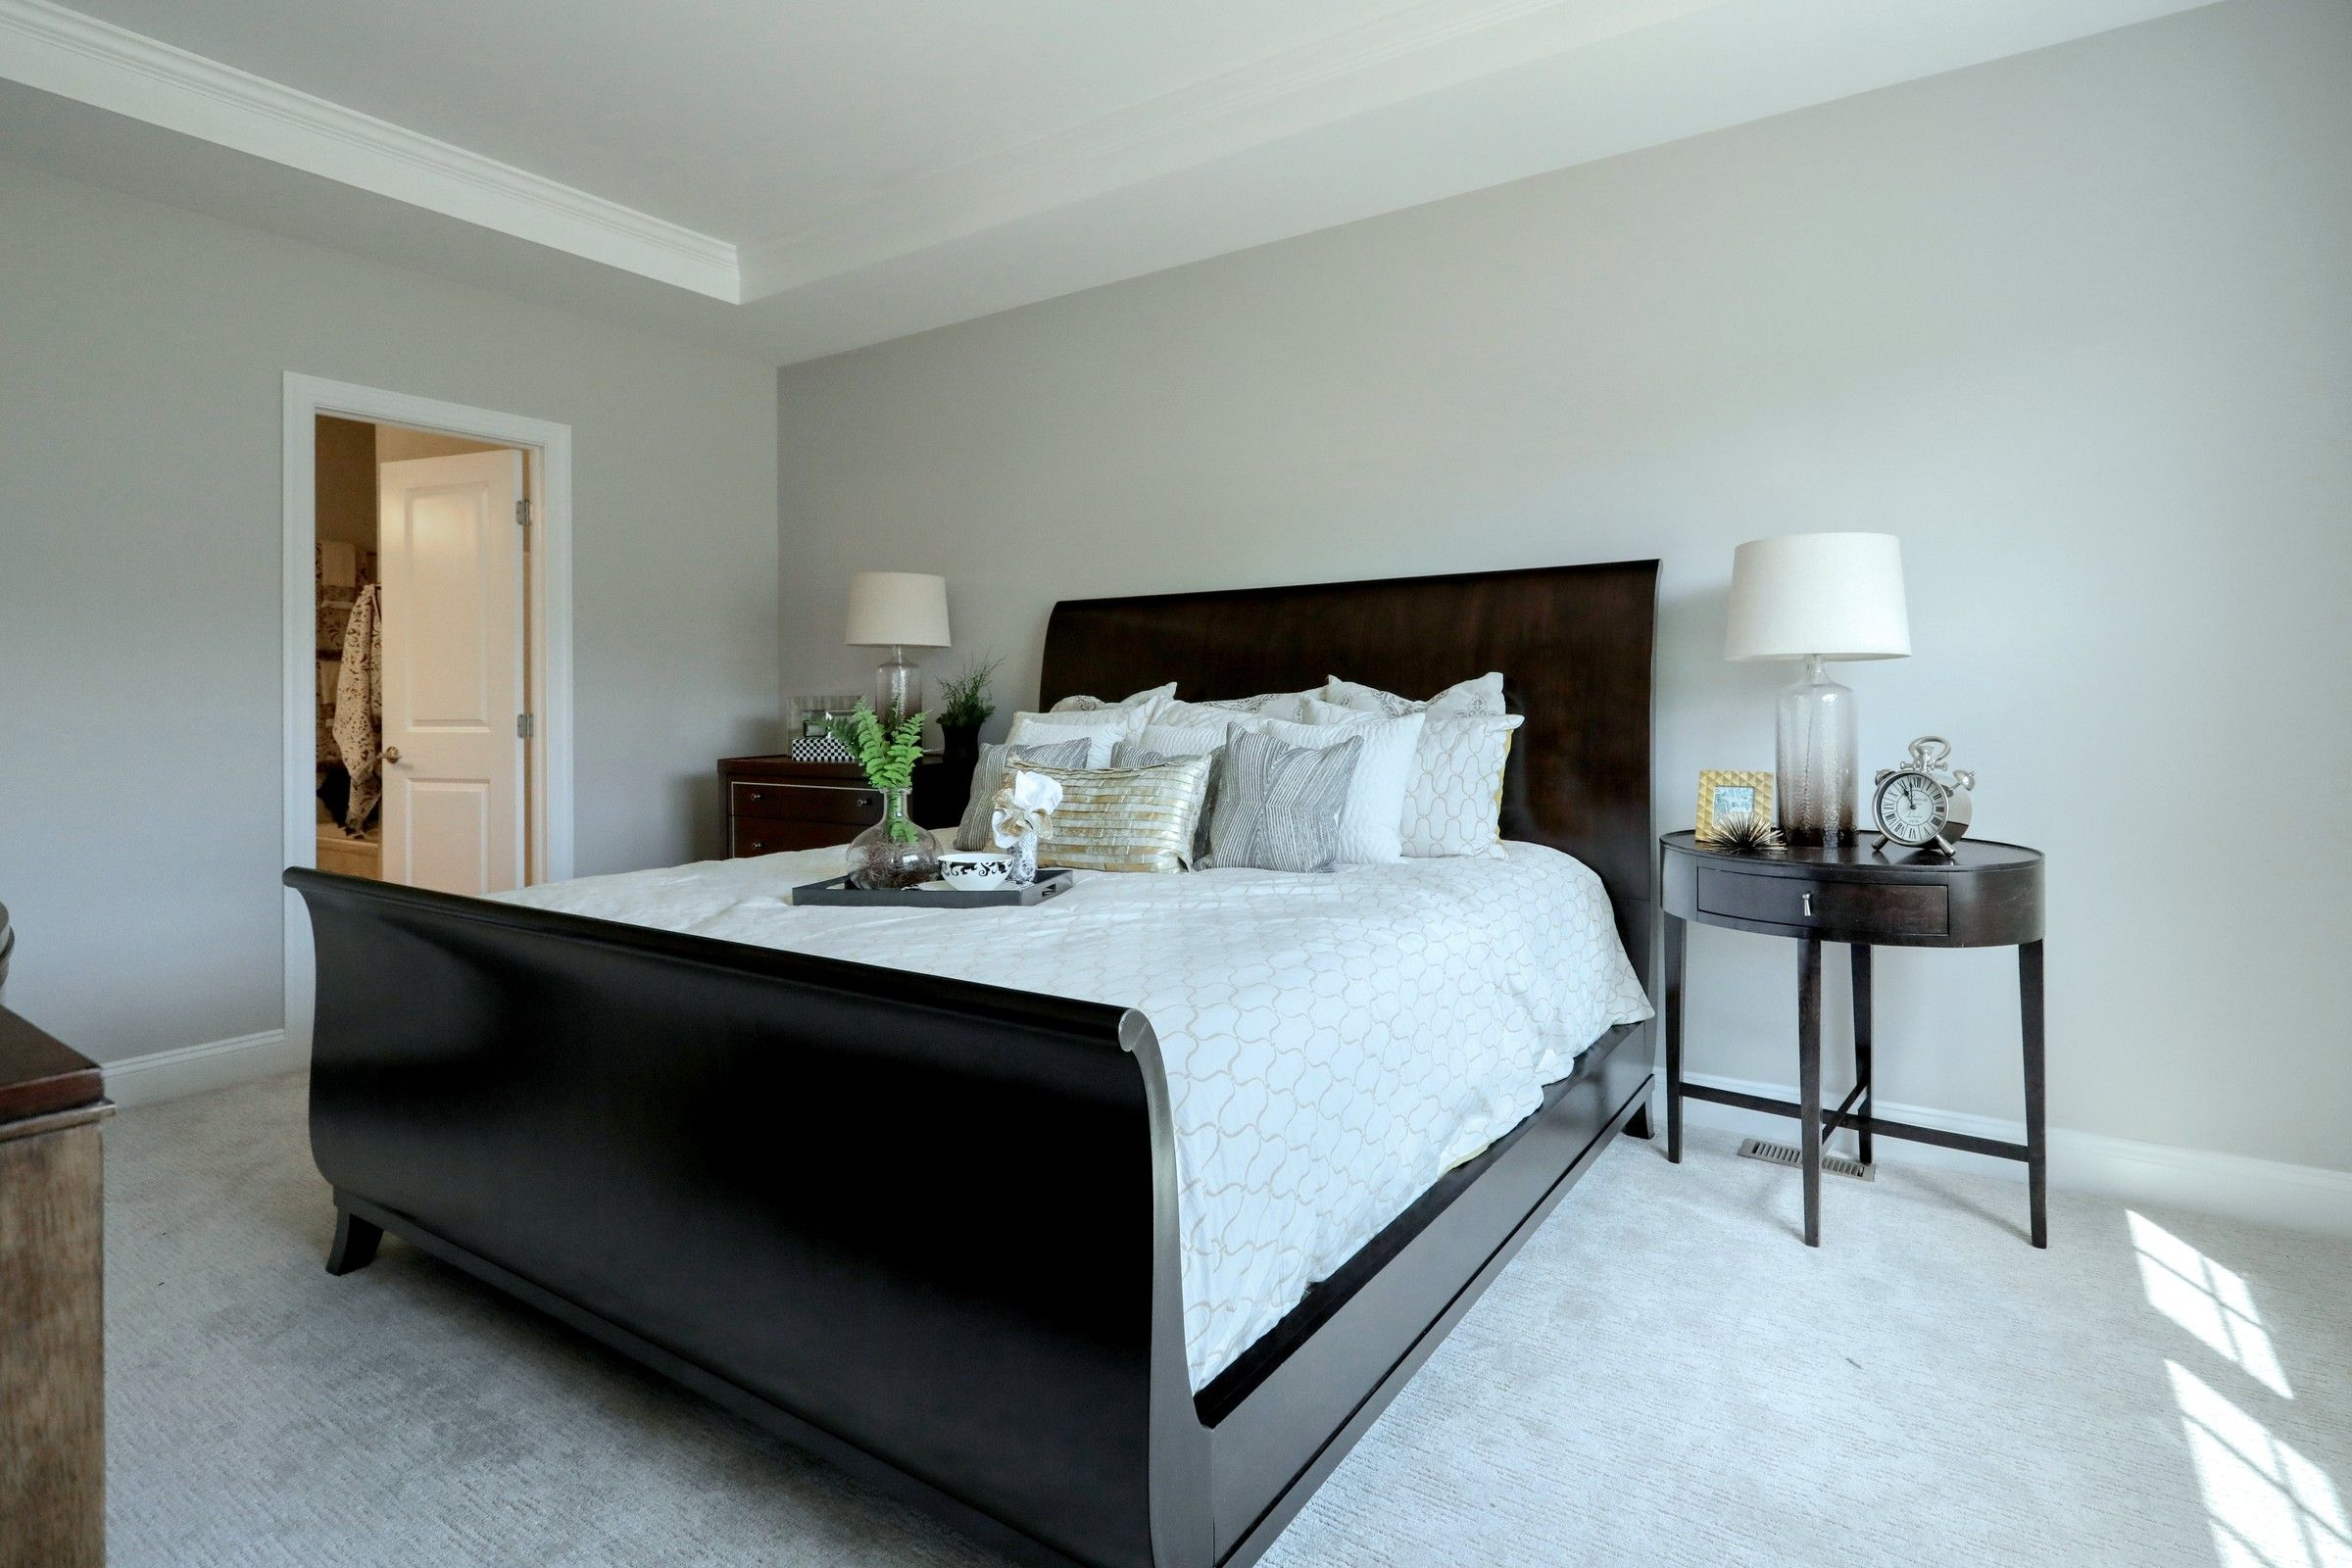 Bedroom featured in the Crestwood Traditional By Keystone Custom Homes in Lancaster, PA